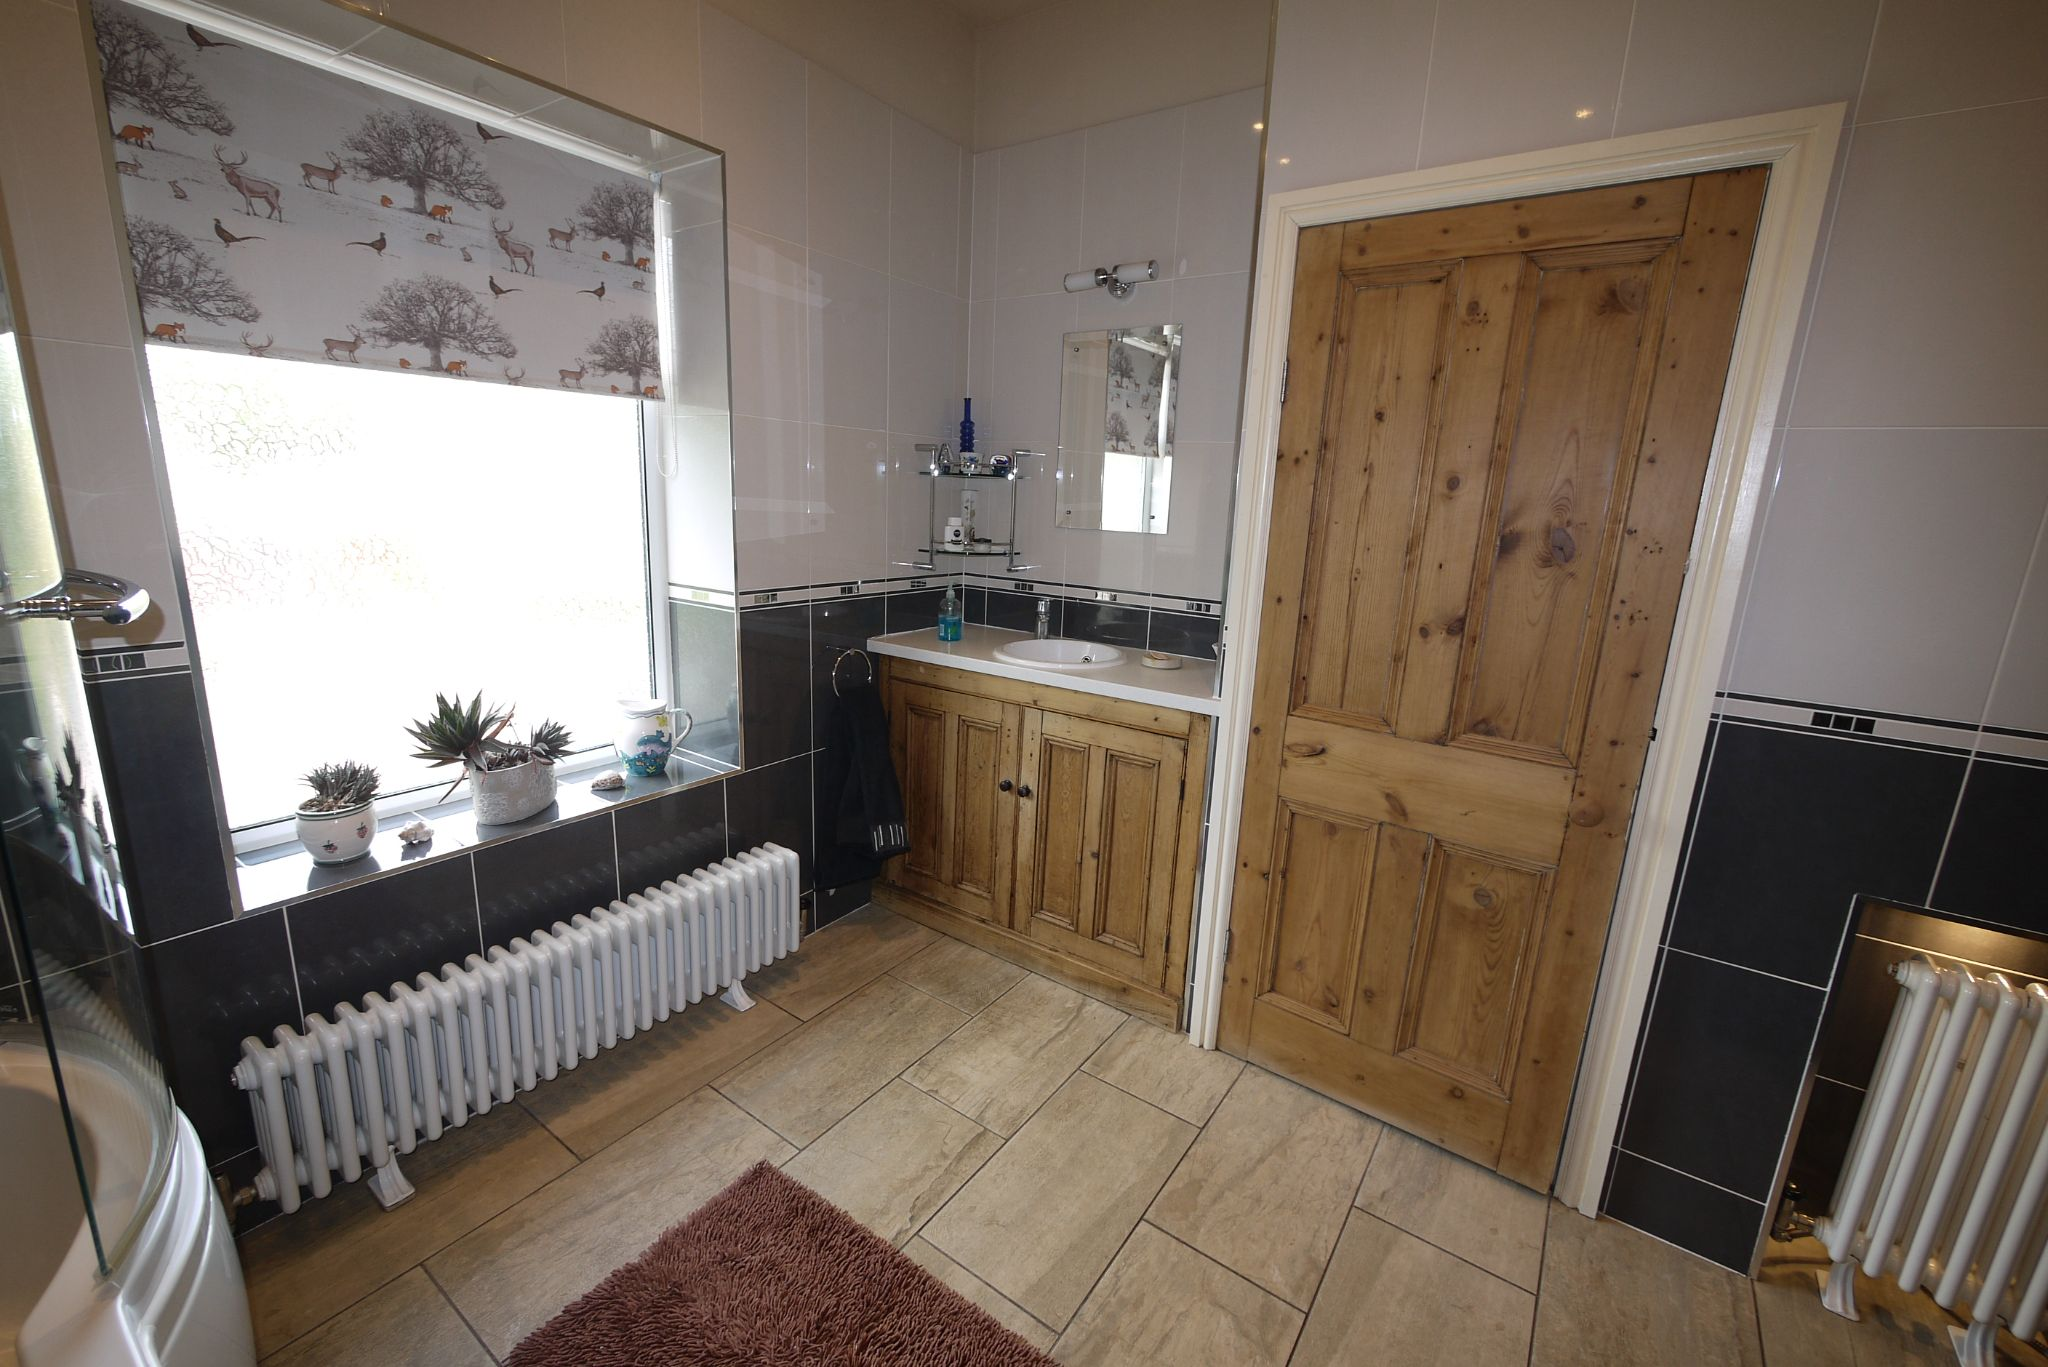 3 bedroom semi-detached house For Sale in Brighouse - Photograph 4.